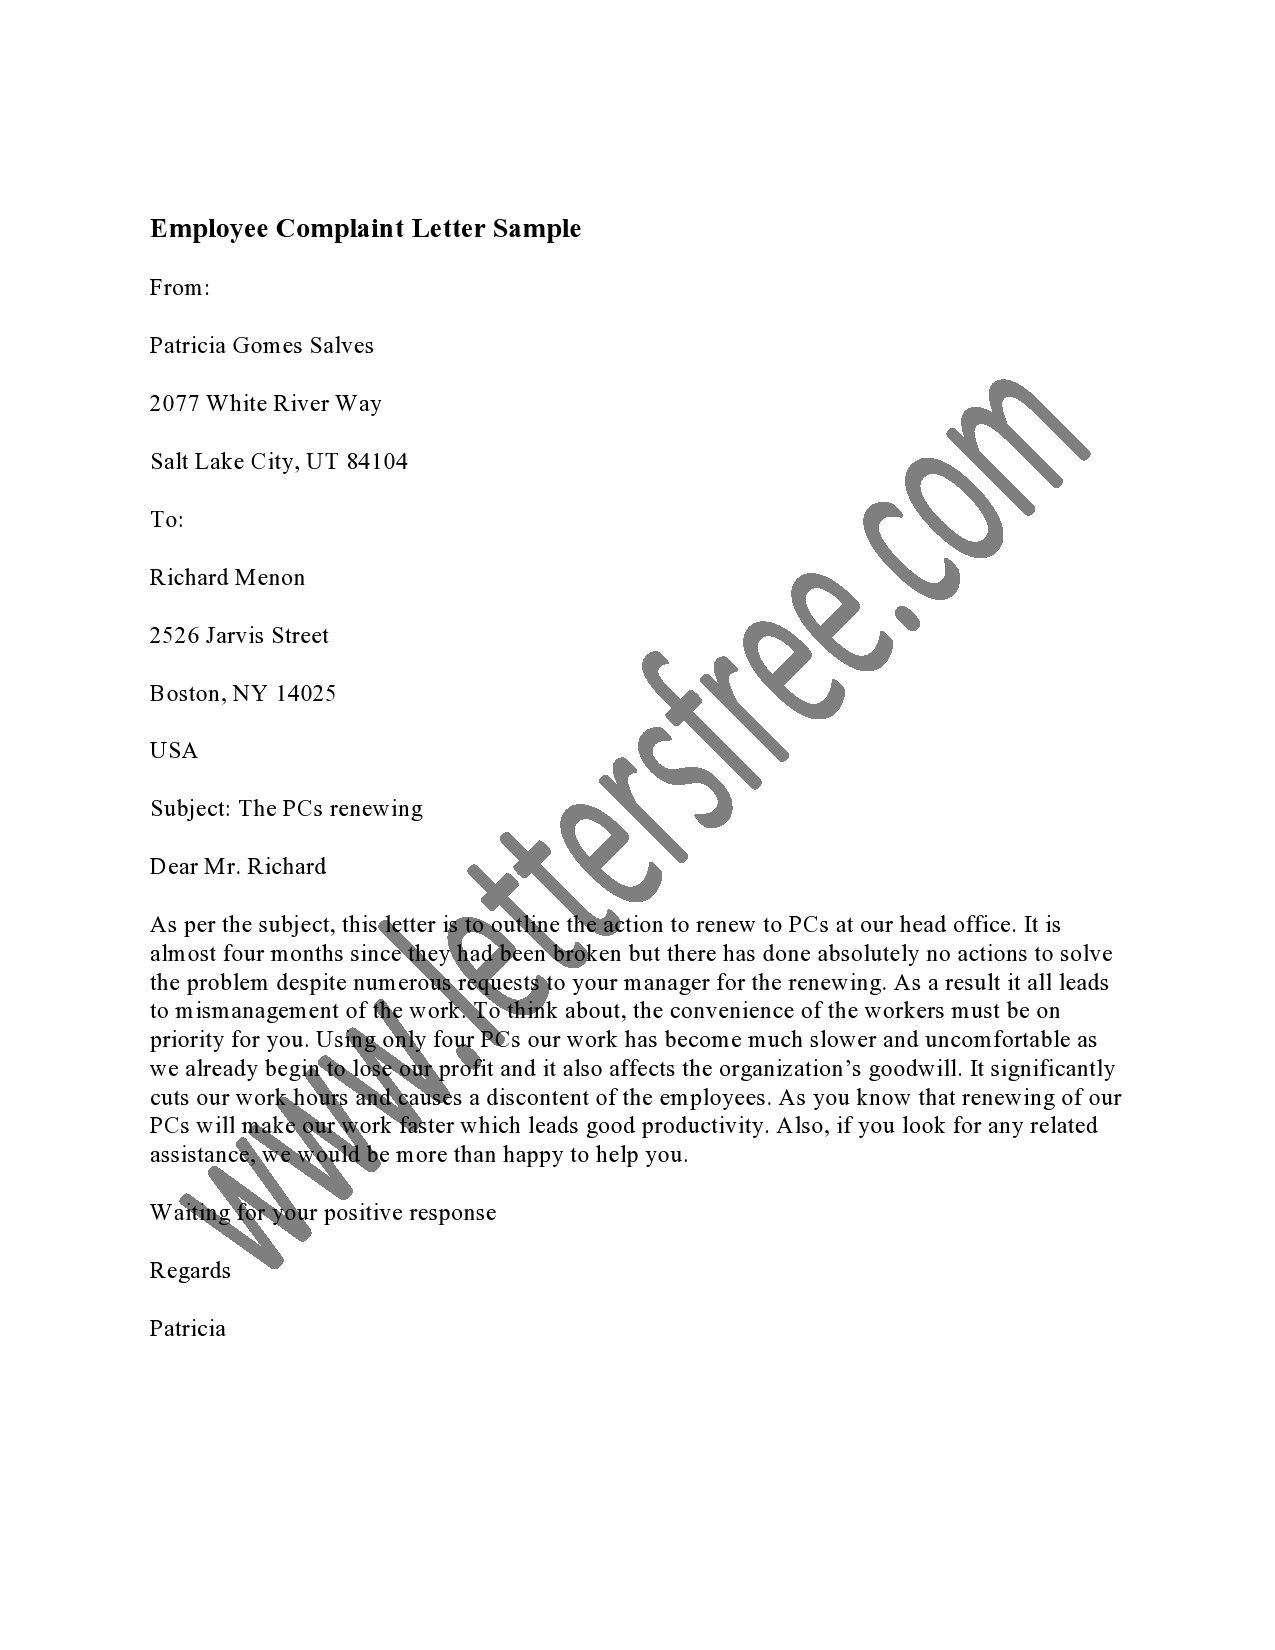 How to write an effective letter of complaint an employee complaint an employee complaint letter is a way for employees to make a an employee complaint letter expocarfo